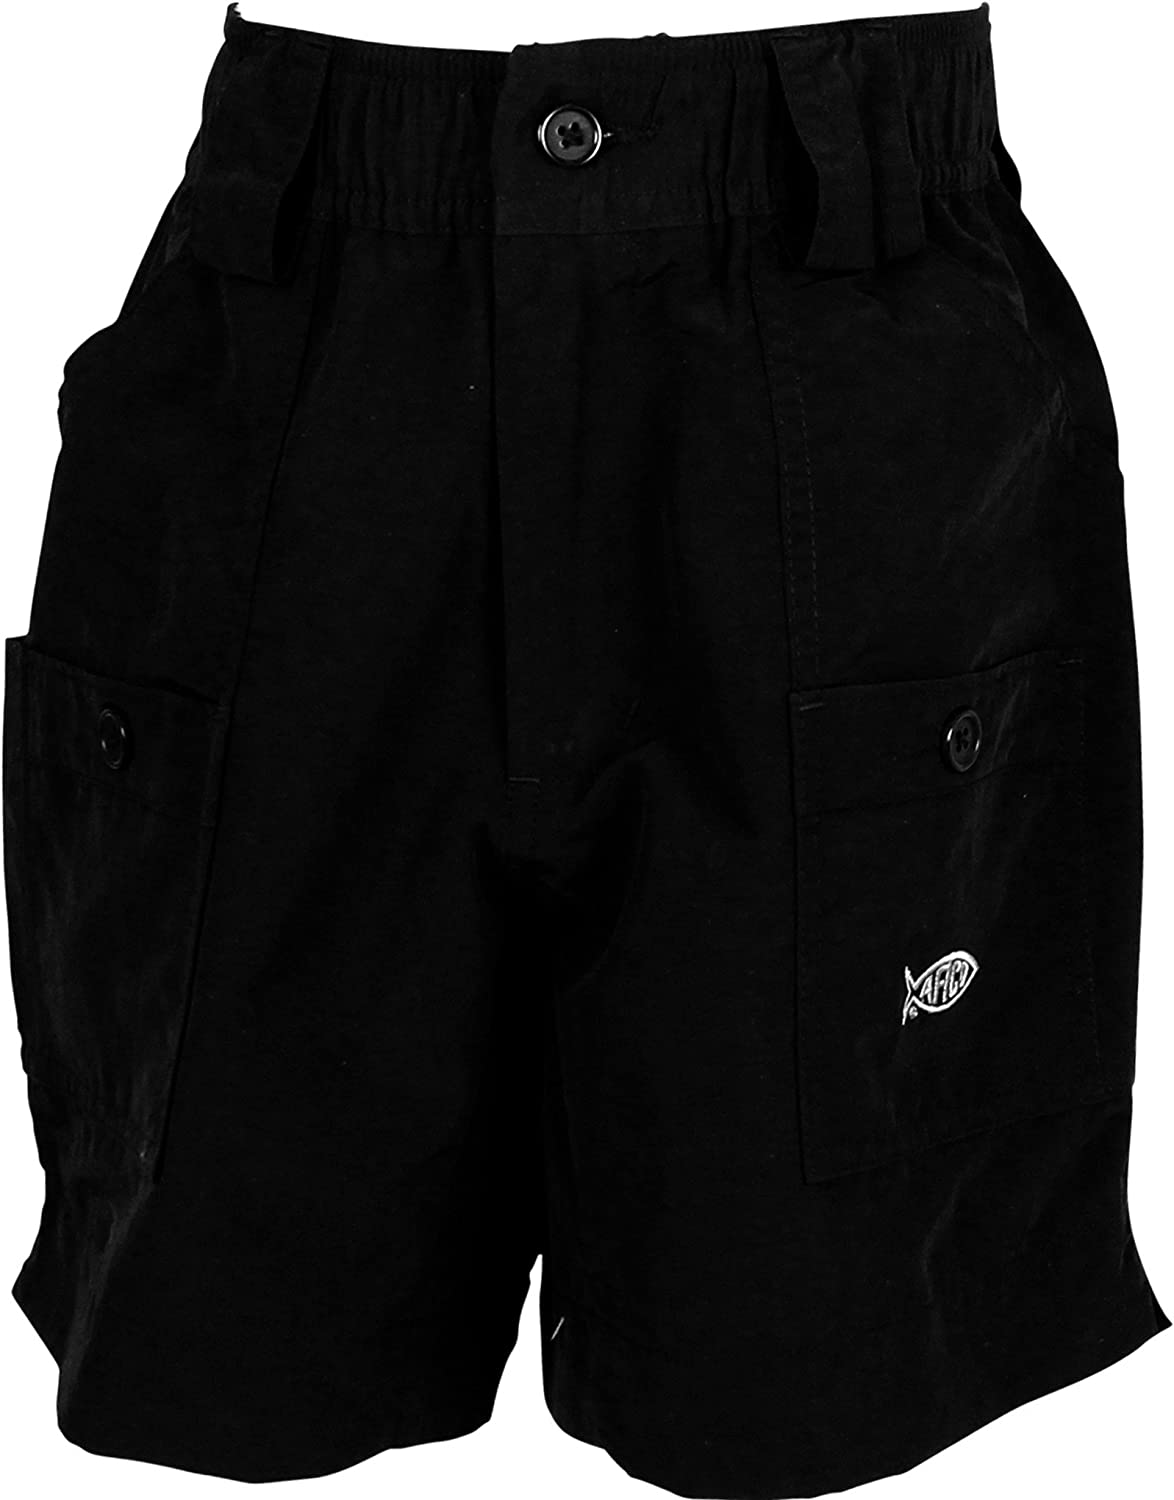 AFTCO M01 Original Boys Fishing Shorts